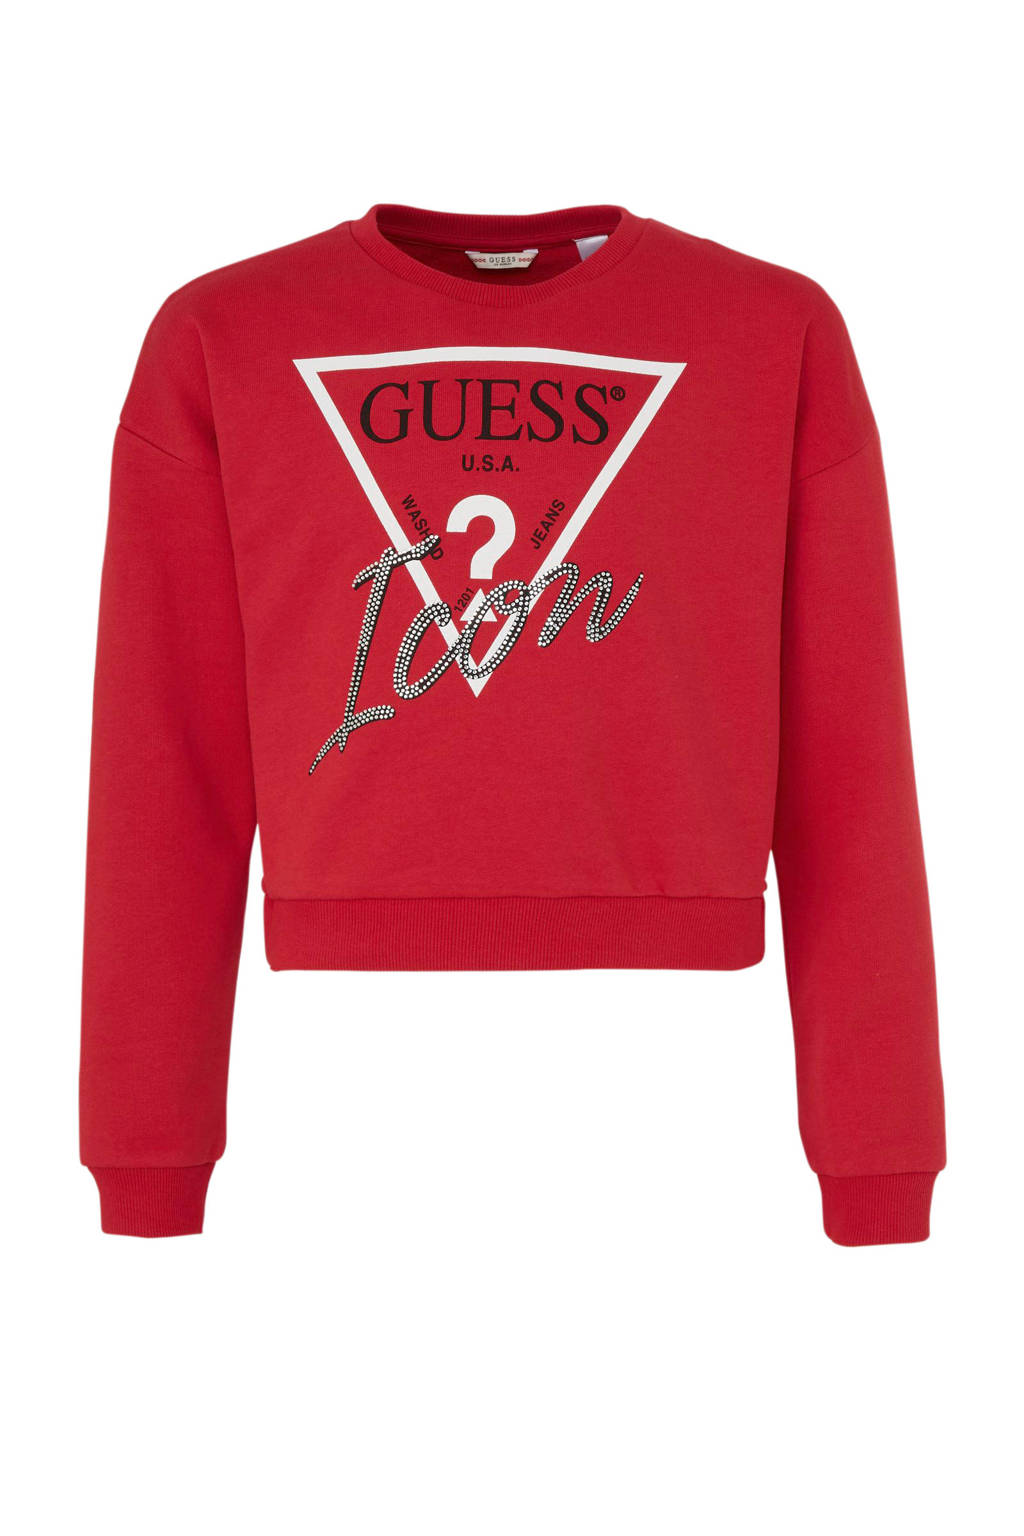 GUESS glittersweater met logo rood, Rood